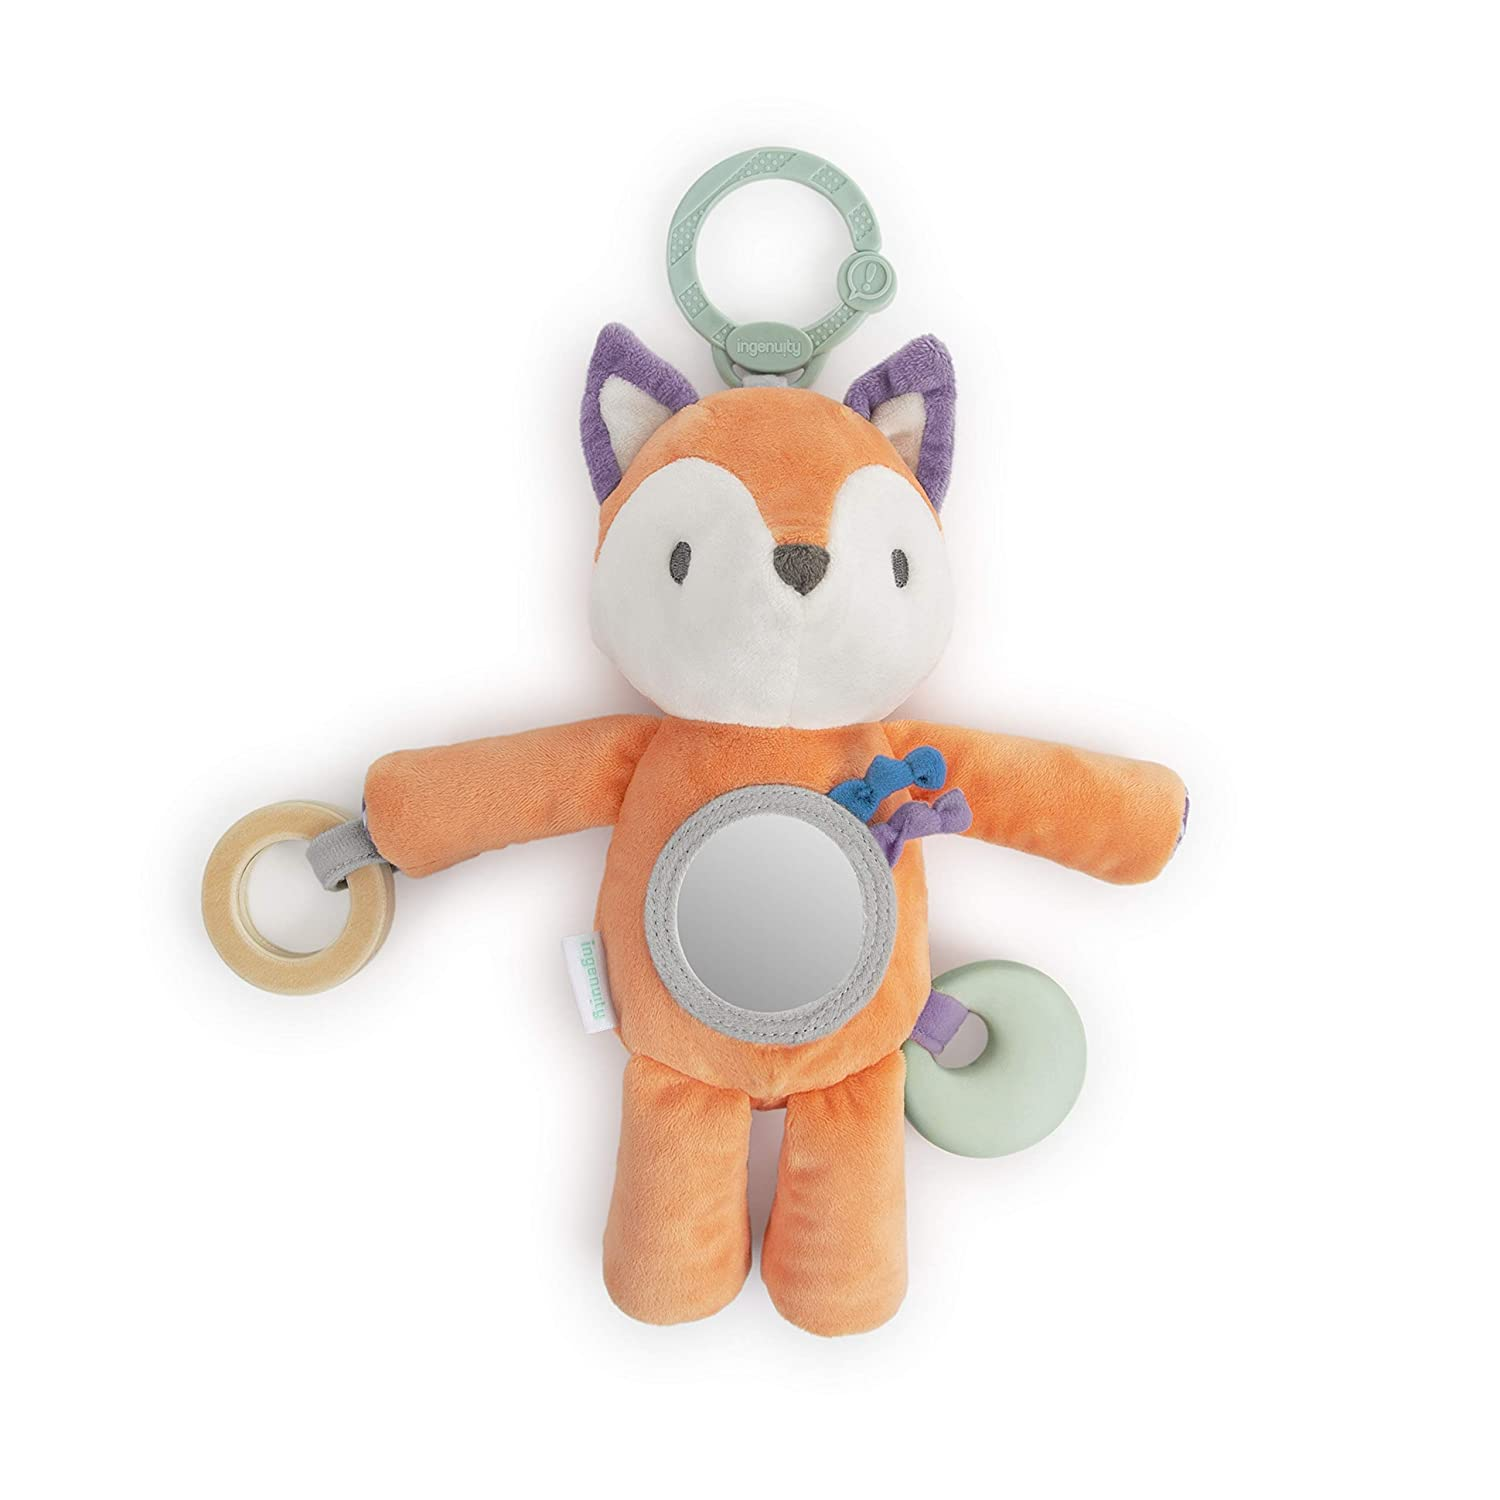 Ingenuity Premium Soft Plush Travel Activity Teether Toy - Kitt The Fox, Ages Newborn +